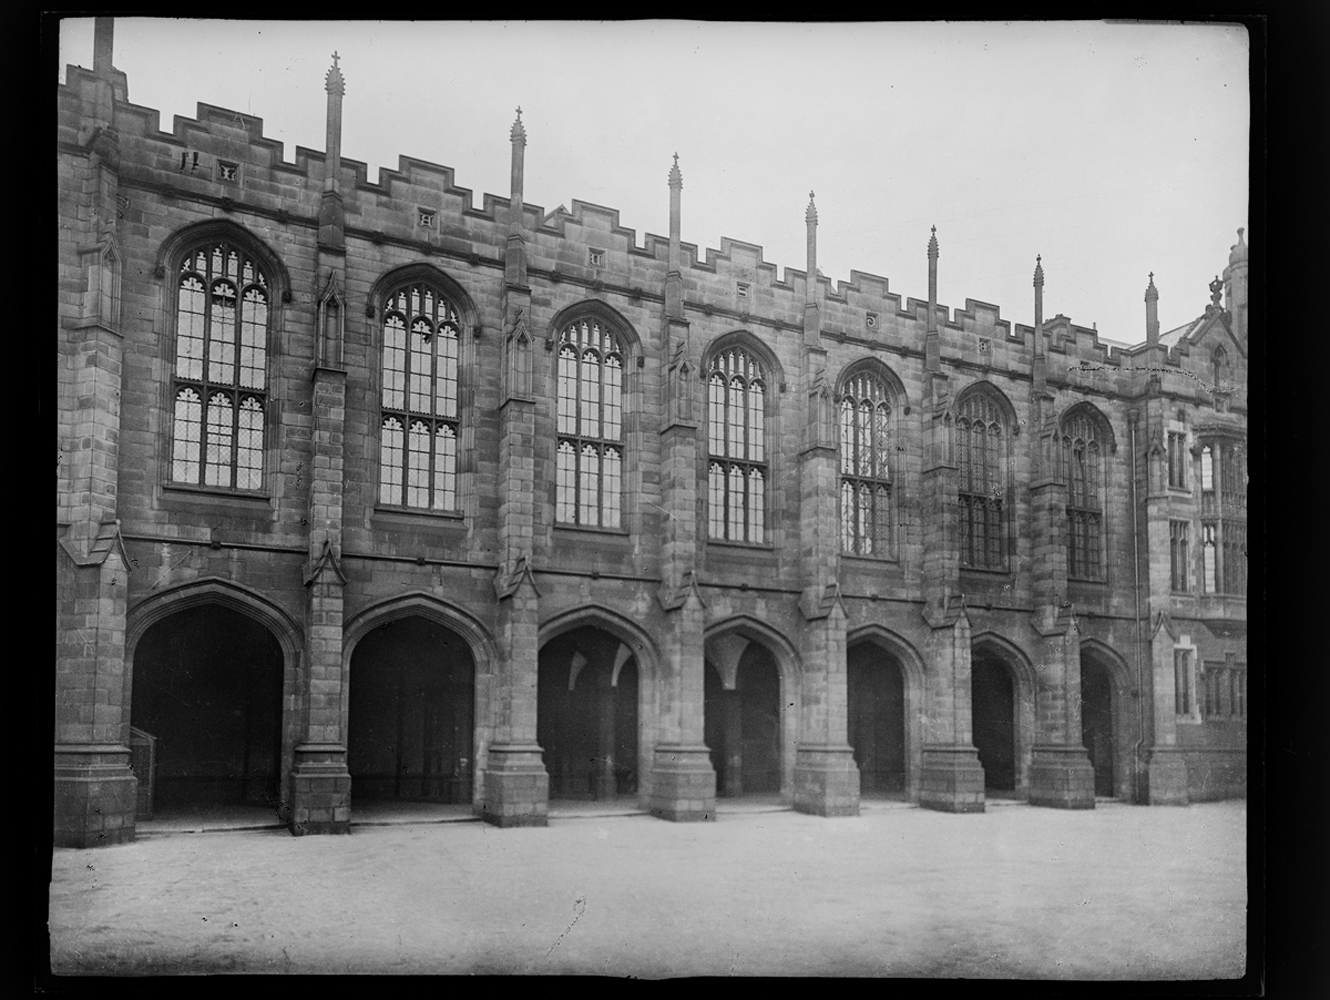 http://www.davidrowan.org/files/gimgs/54_ke-archive-extra-large-glass-plate-negatives----school-from-playground.jpg